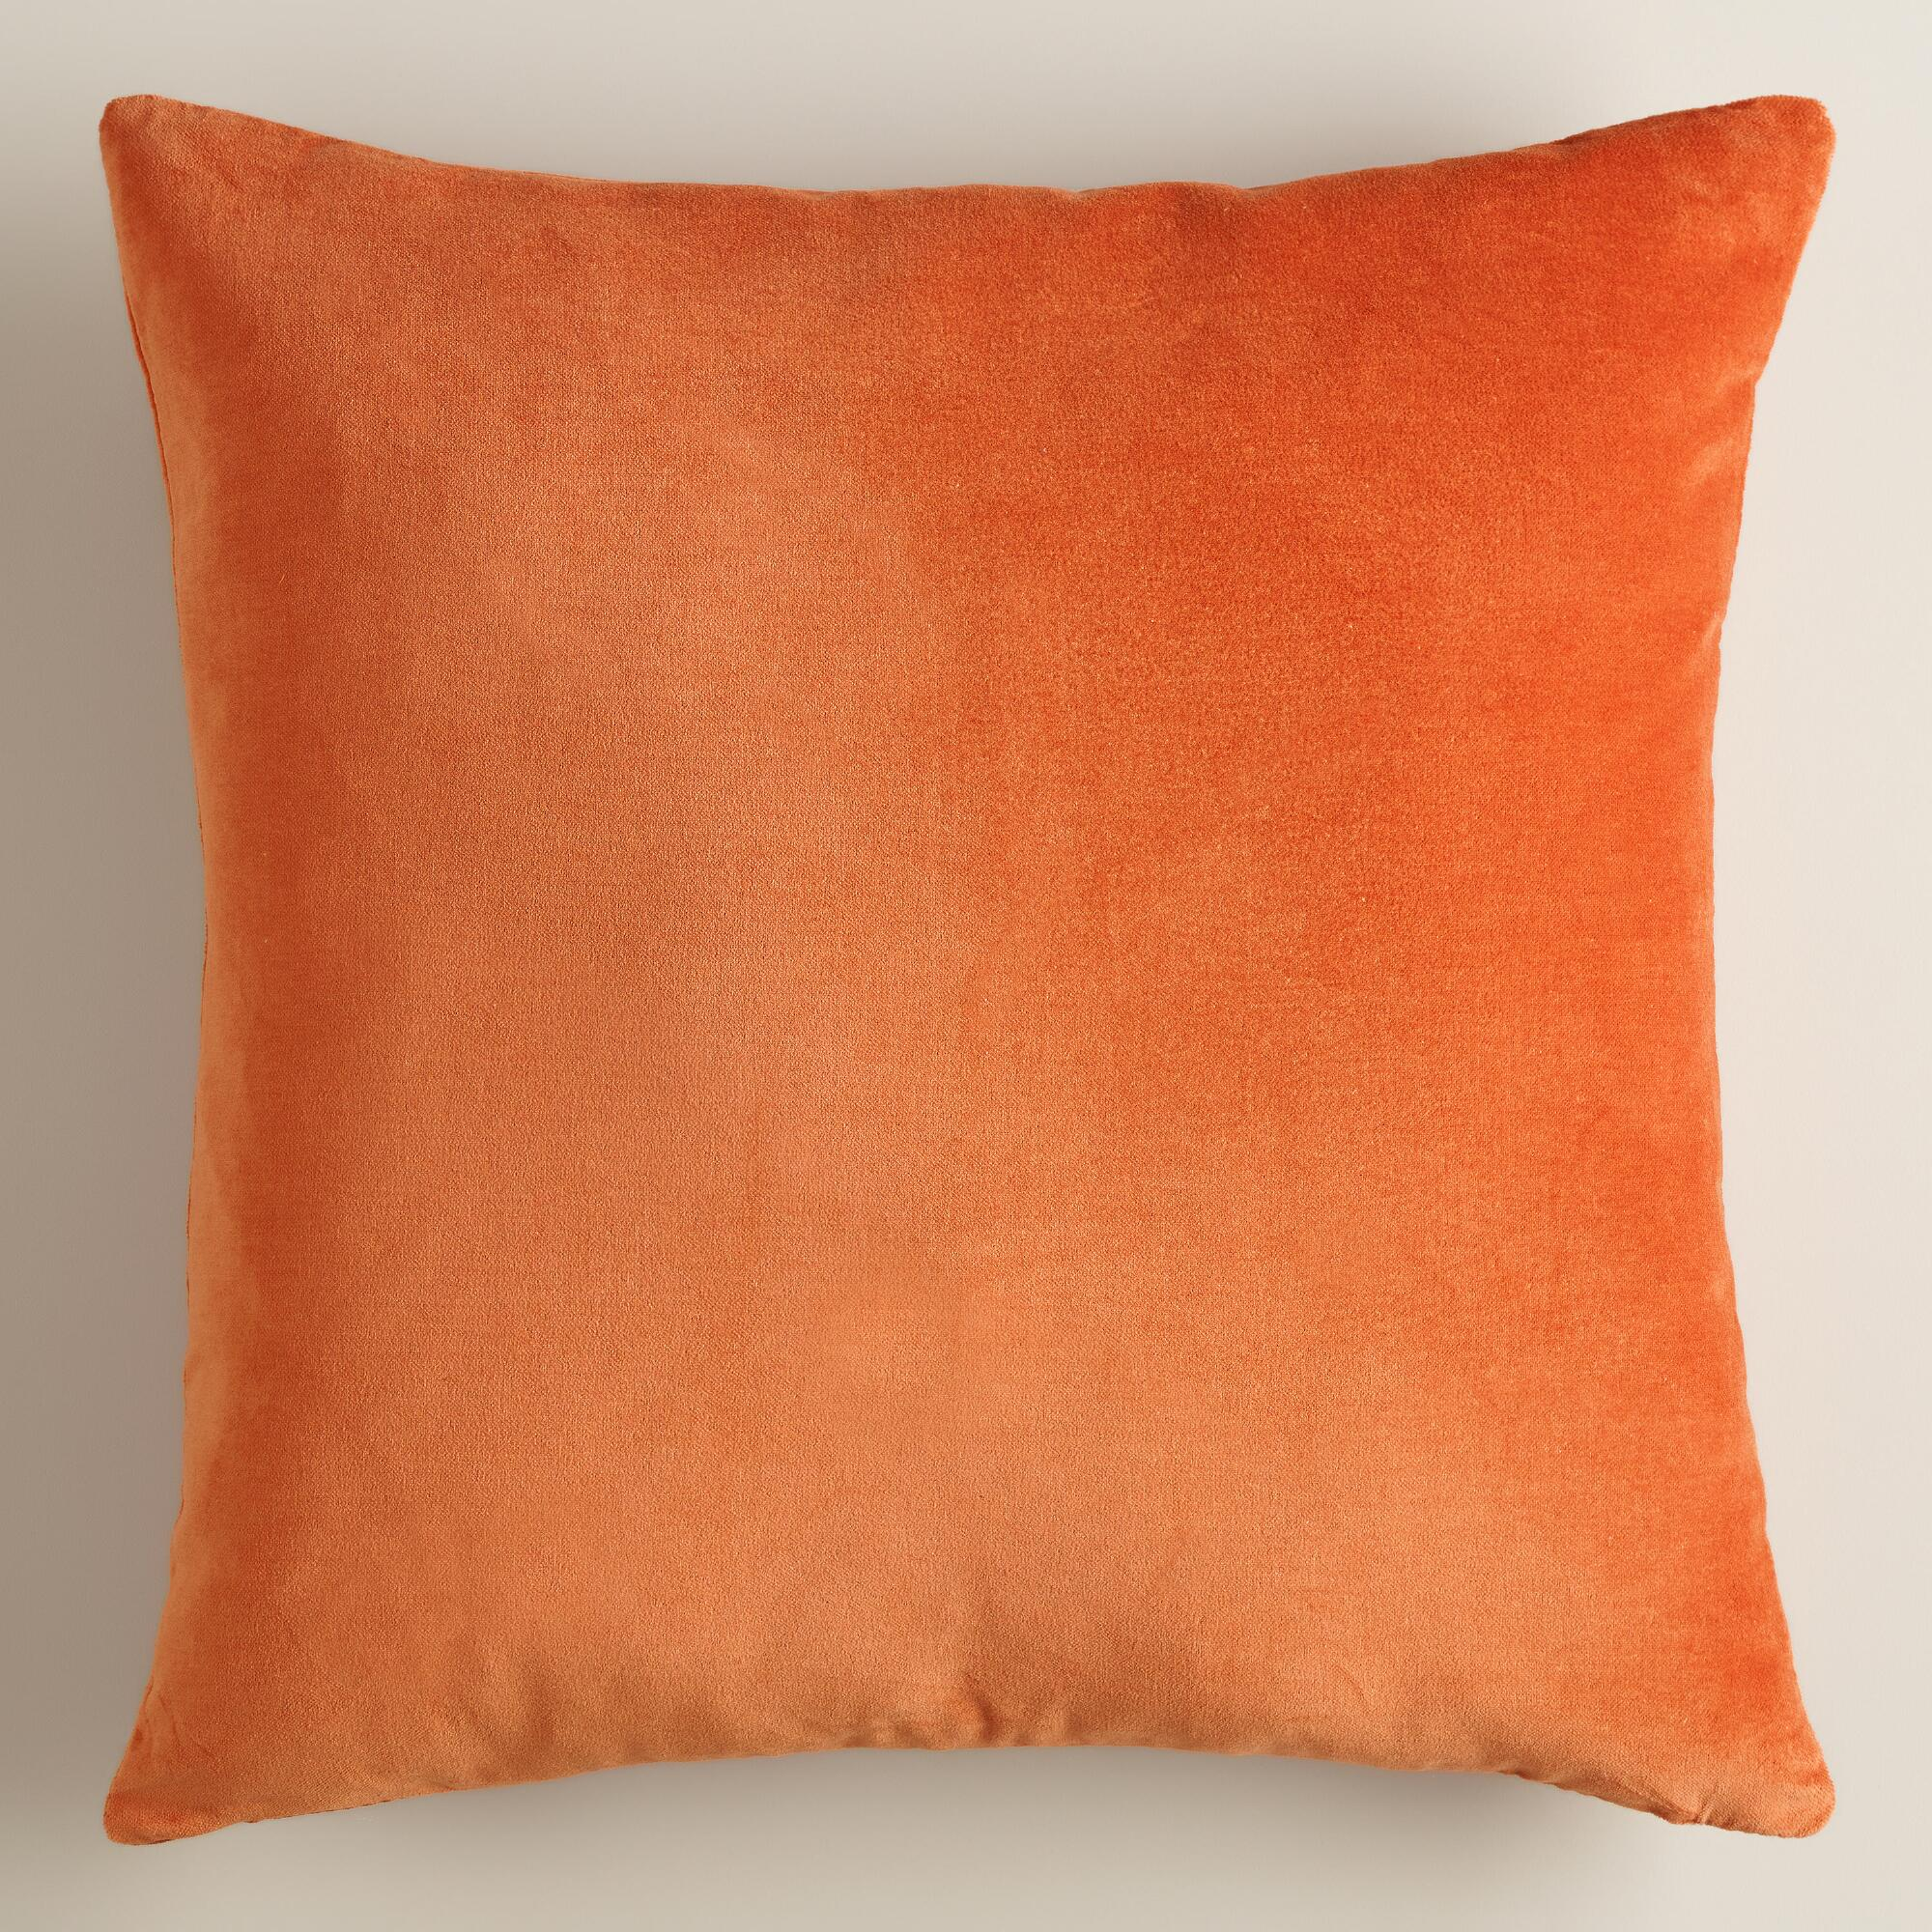 Throw Pillows With Orange : Burnt Orange Velvet Throw Pillow World Market